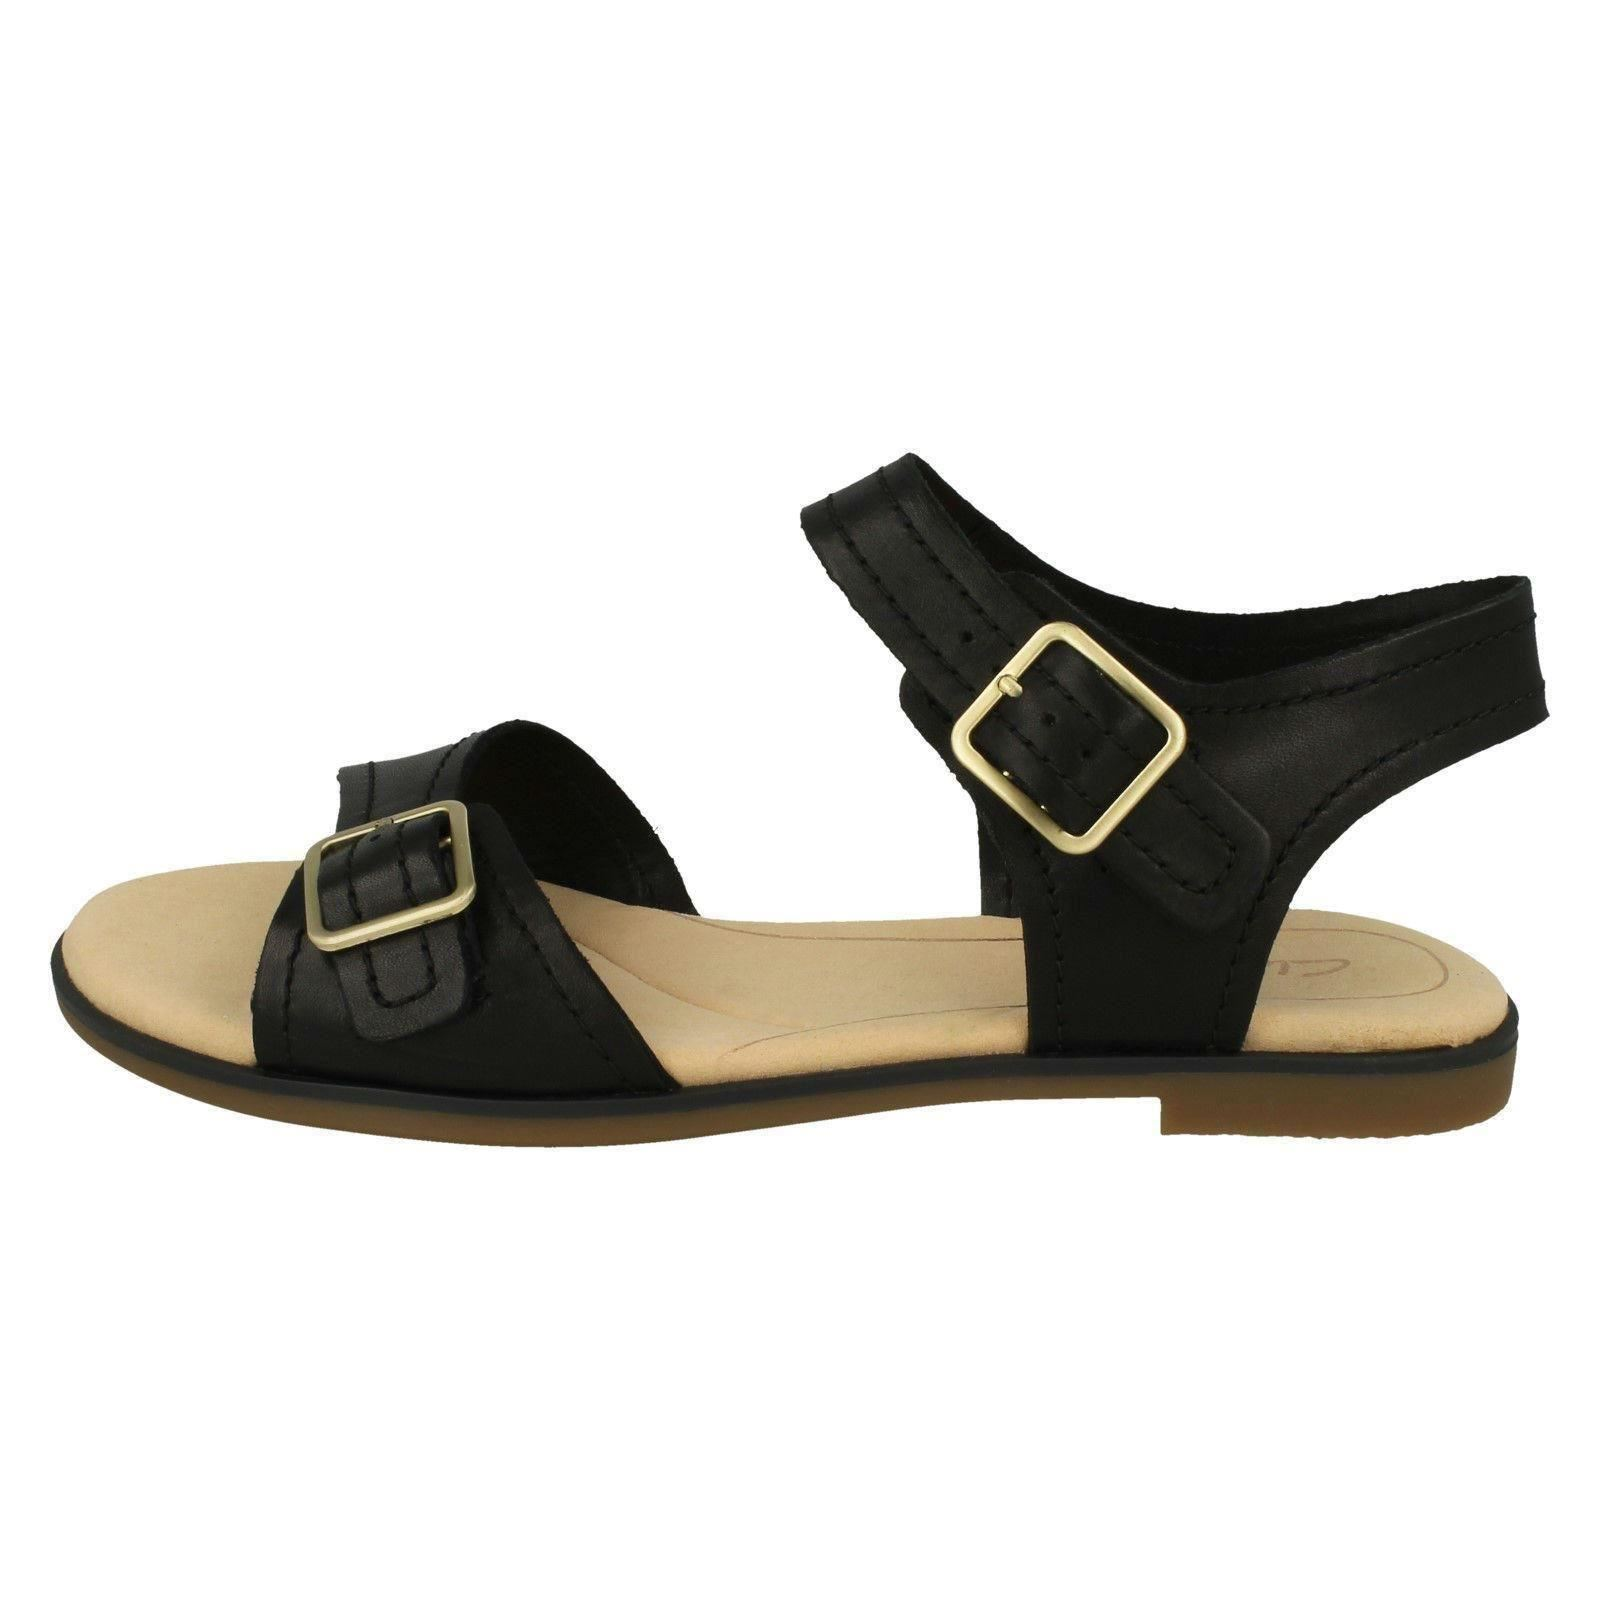 ad620b35875 Clarks Bay Primrose - Black Leather Womens Sandals 3 UK. About this  product. Picture 1 of 10  Picture 2 of 10  Picture 3 of 10 ...